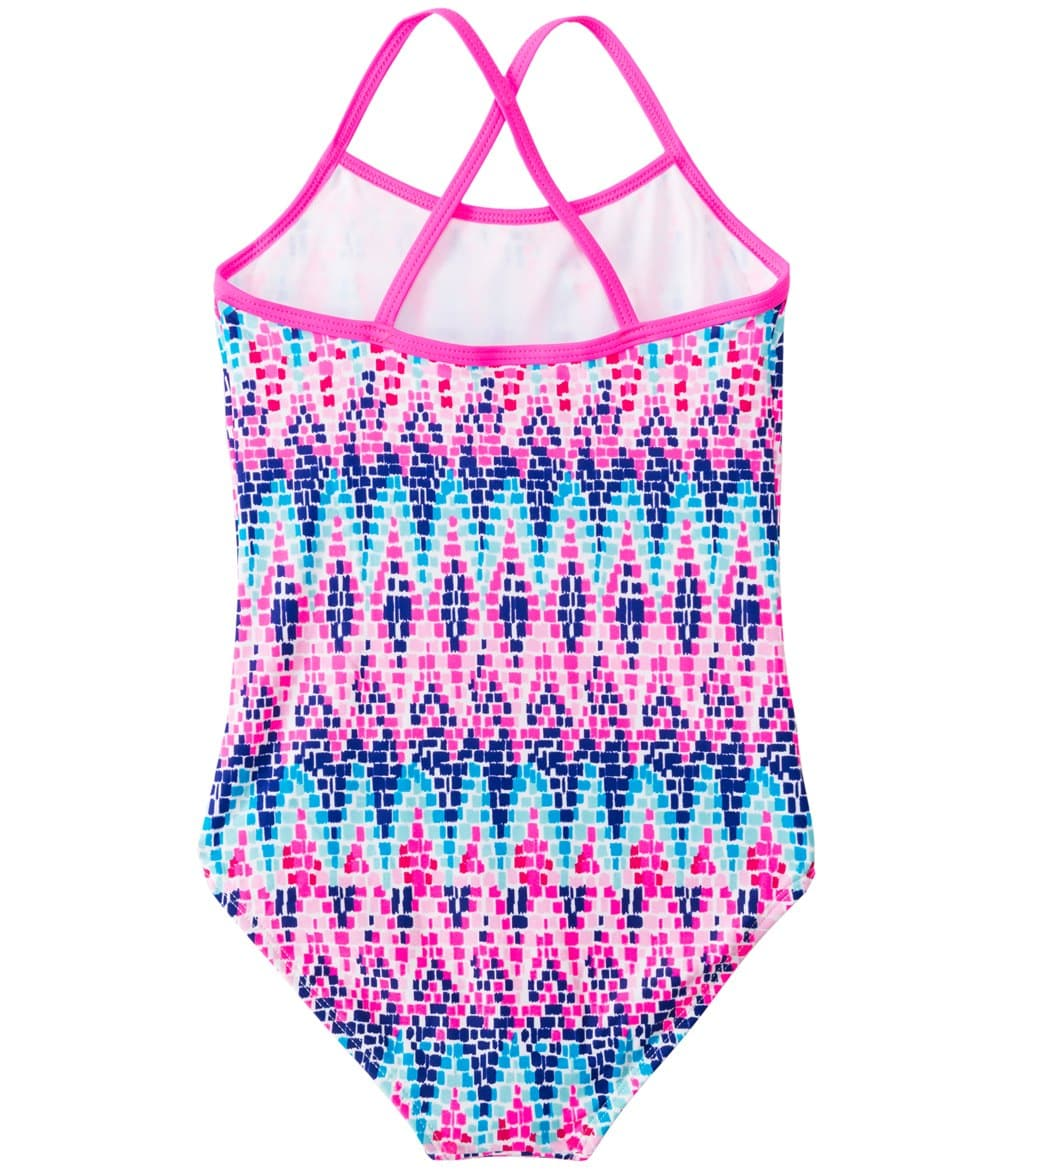 3b86918ea4 Kanu Surf Girls' Candy One Piece Swimsuit (7-14) at SwimOutlet.com